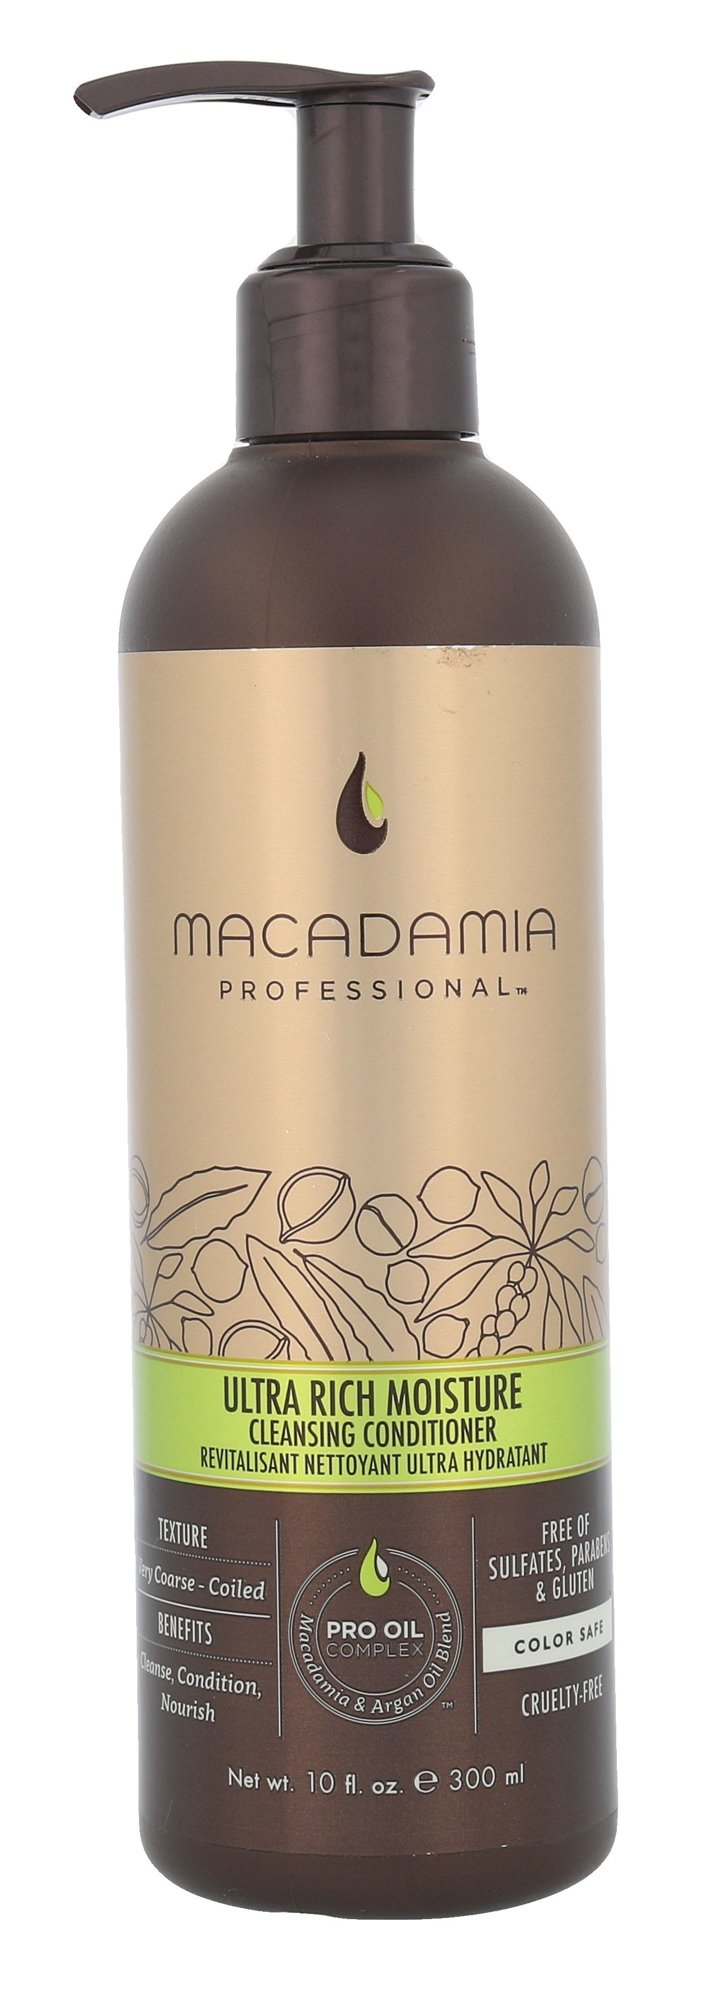 Macadamia Ultra Rich Moisture Cleansing Conditioner Cosmetic 300ml